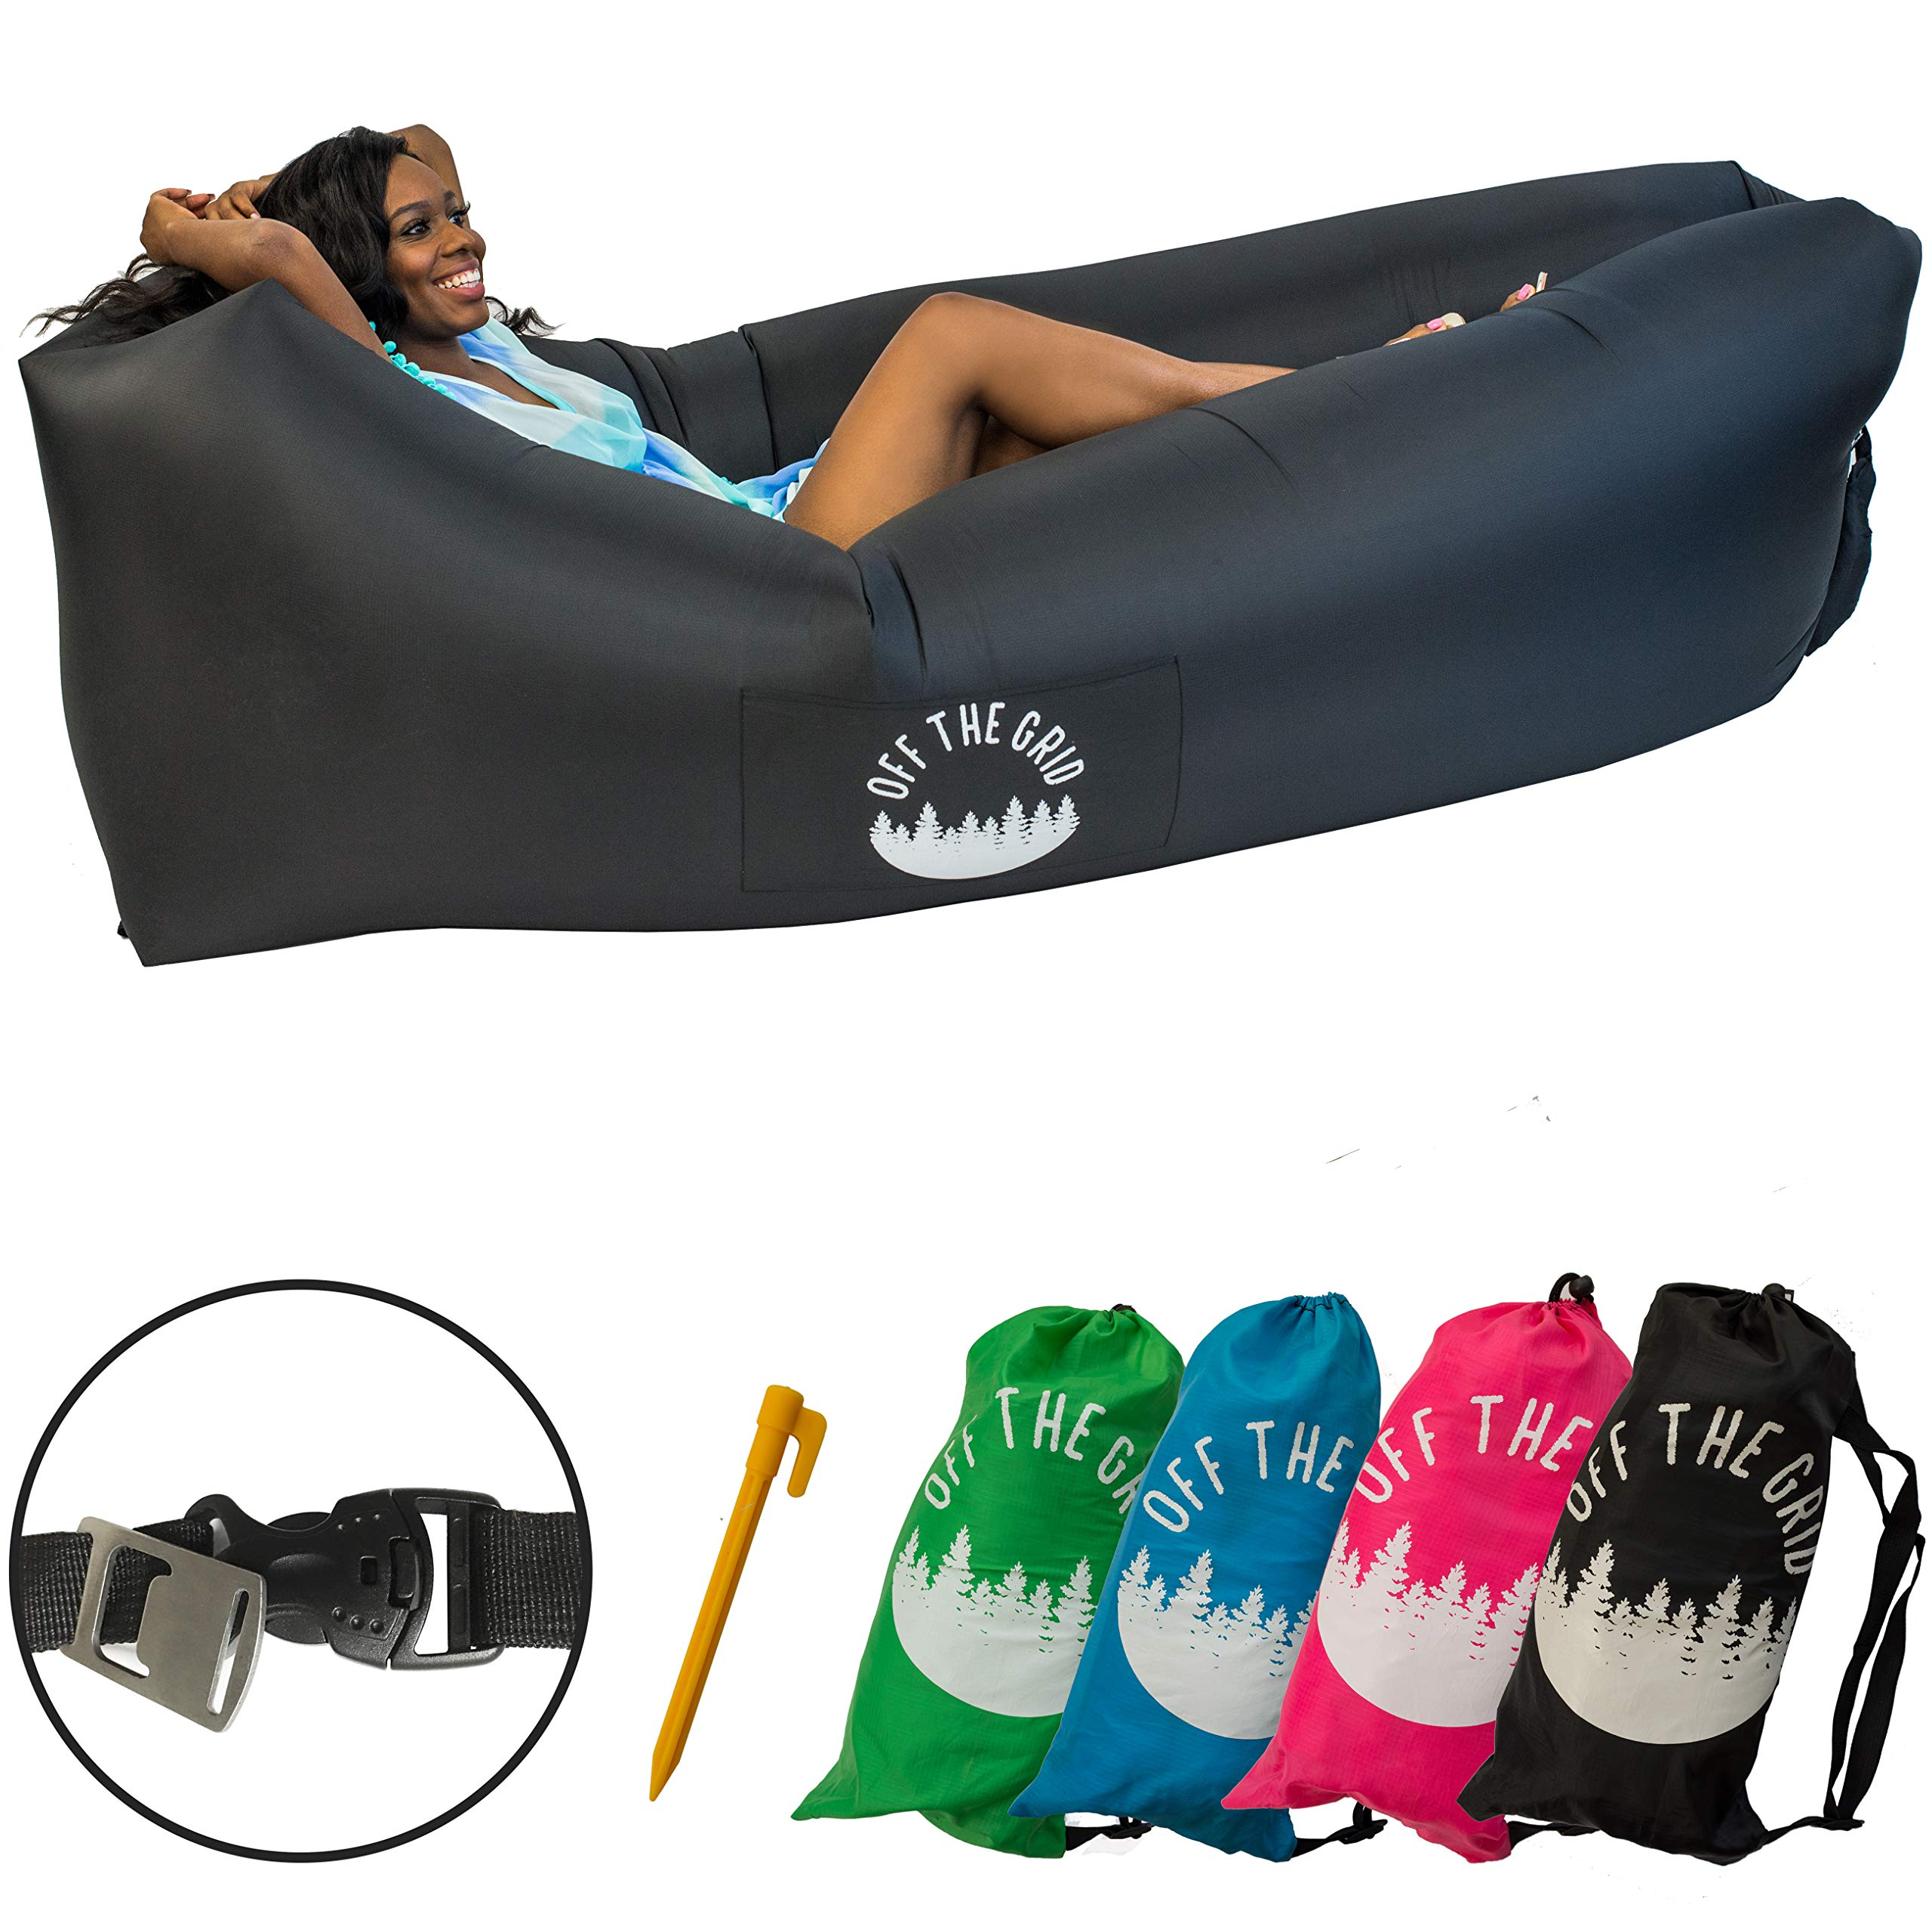 Off the Grid Inflatable Lounger - Air Sofa Wind Chair Hammock - Floating/Portable Bed for Beach, Pool, Camping, Outdoors Lazy Bag Cloud Couch (Black) by Off the Grid